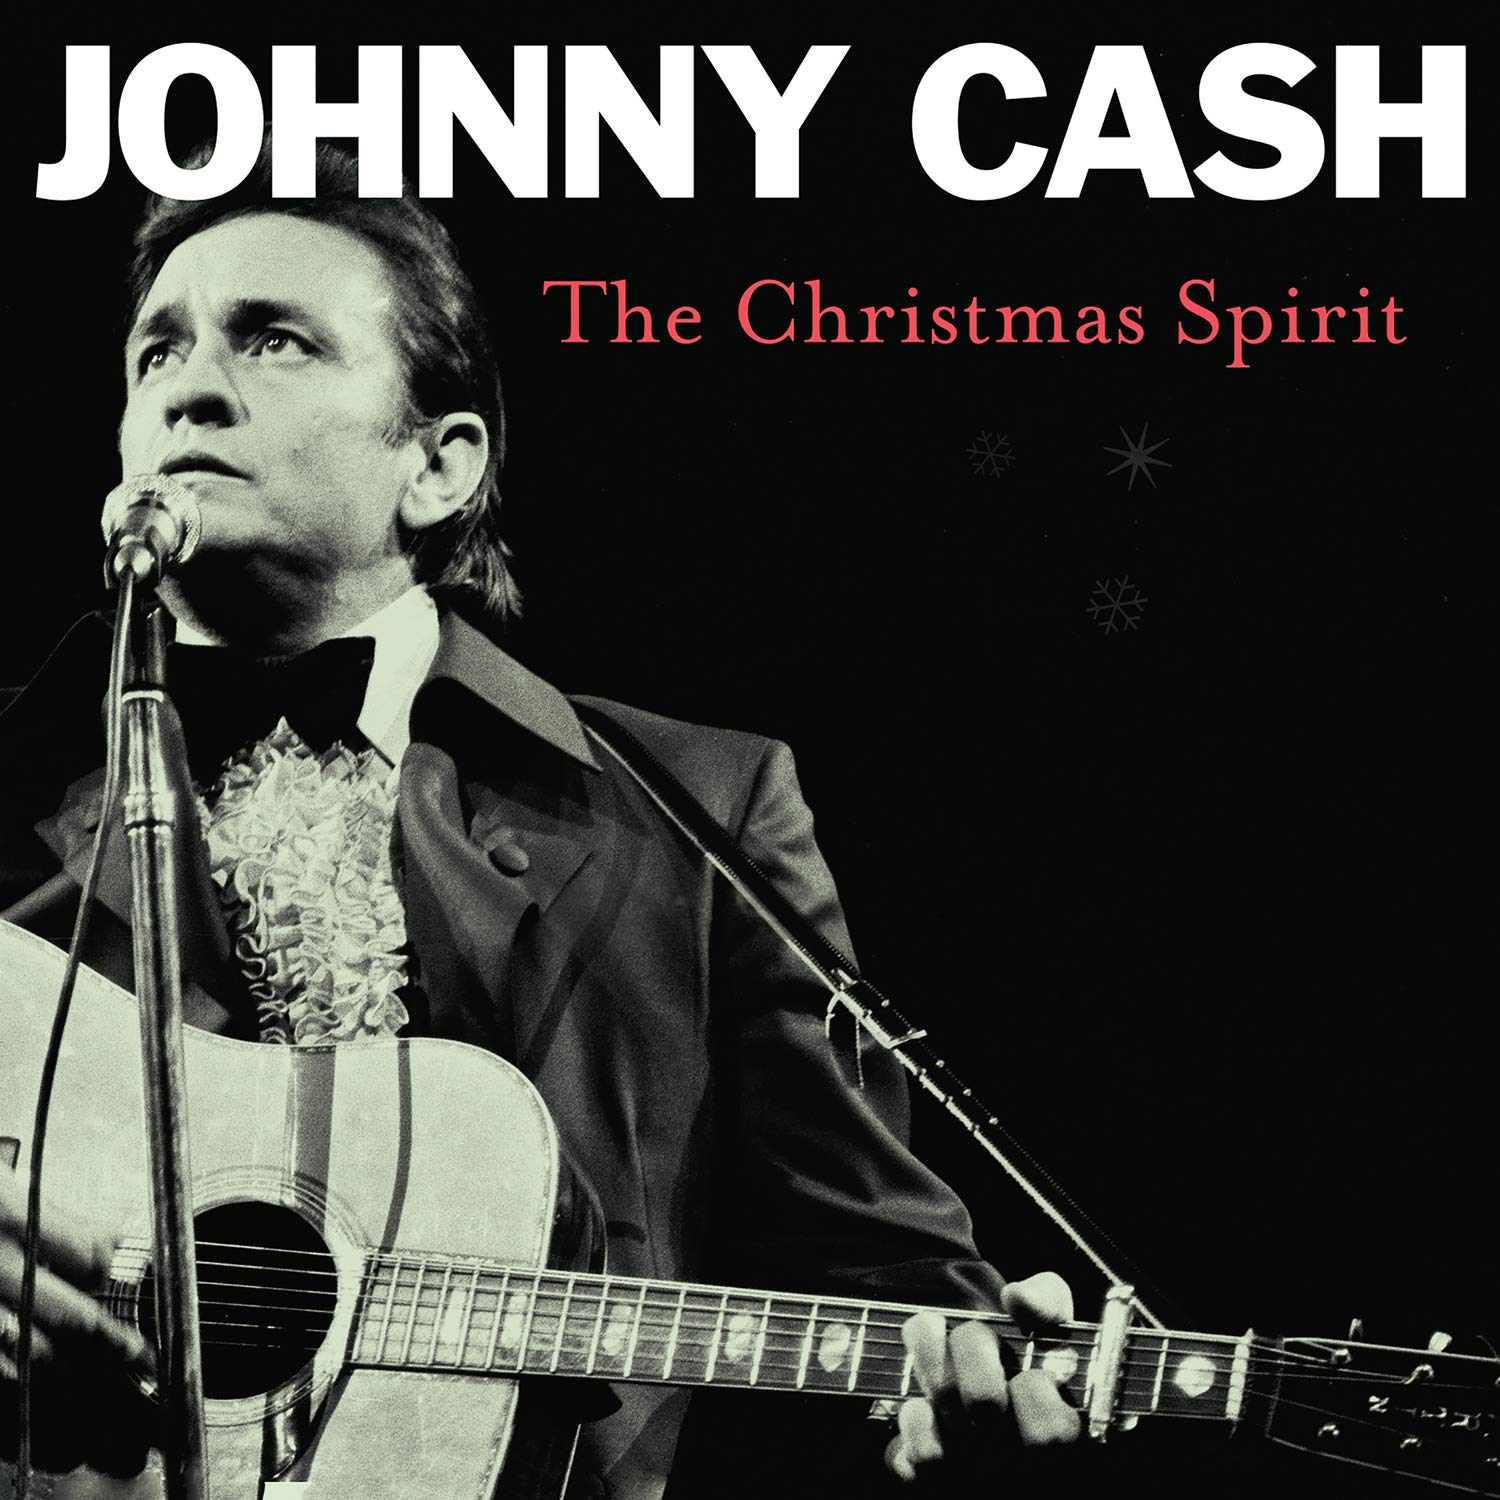 Johnny Cash - The Christmas Spirit - Amazon.com Music